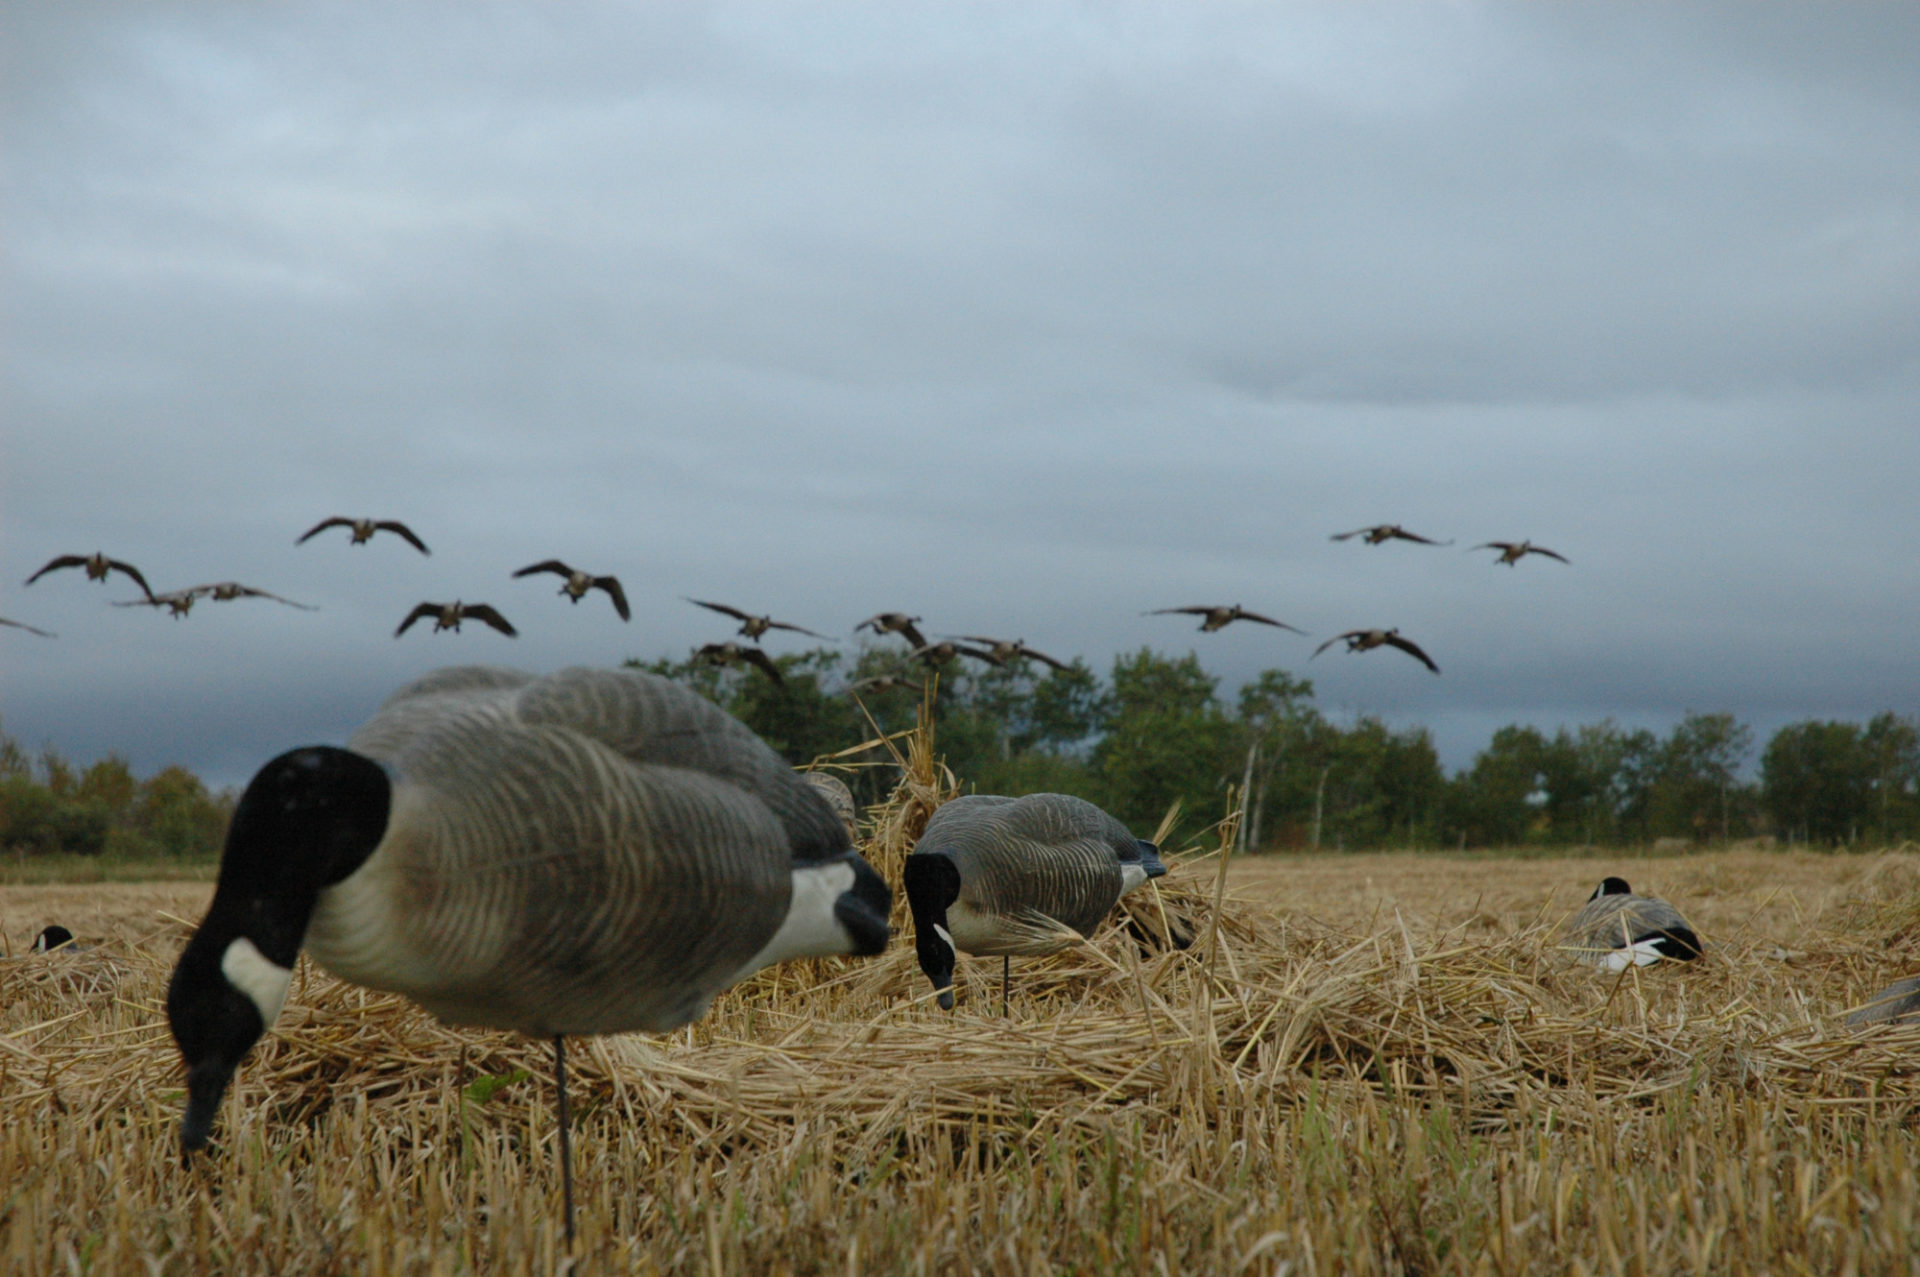 The Beretta A400 Xtreme Plus would be a perfect fit for this goose hunt.